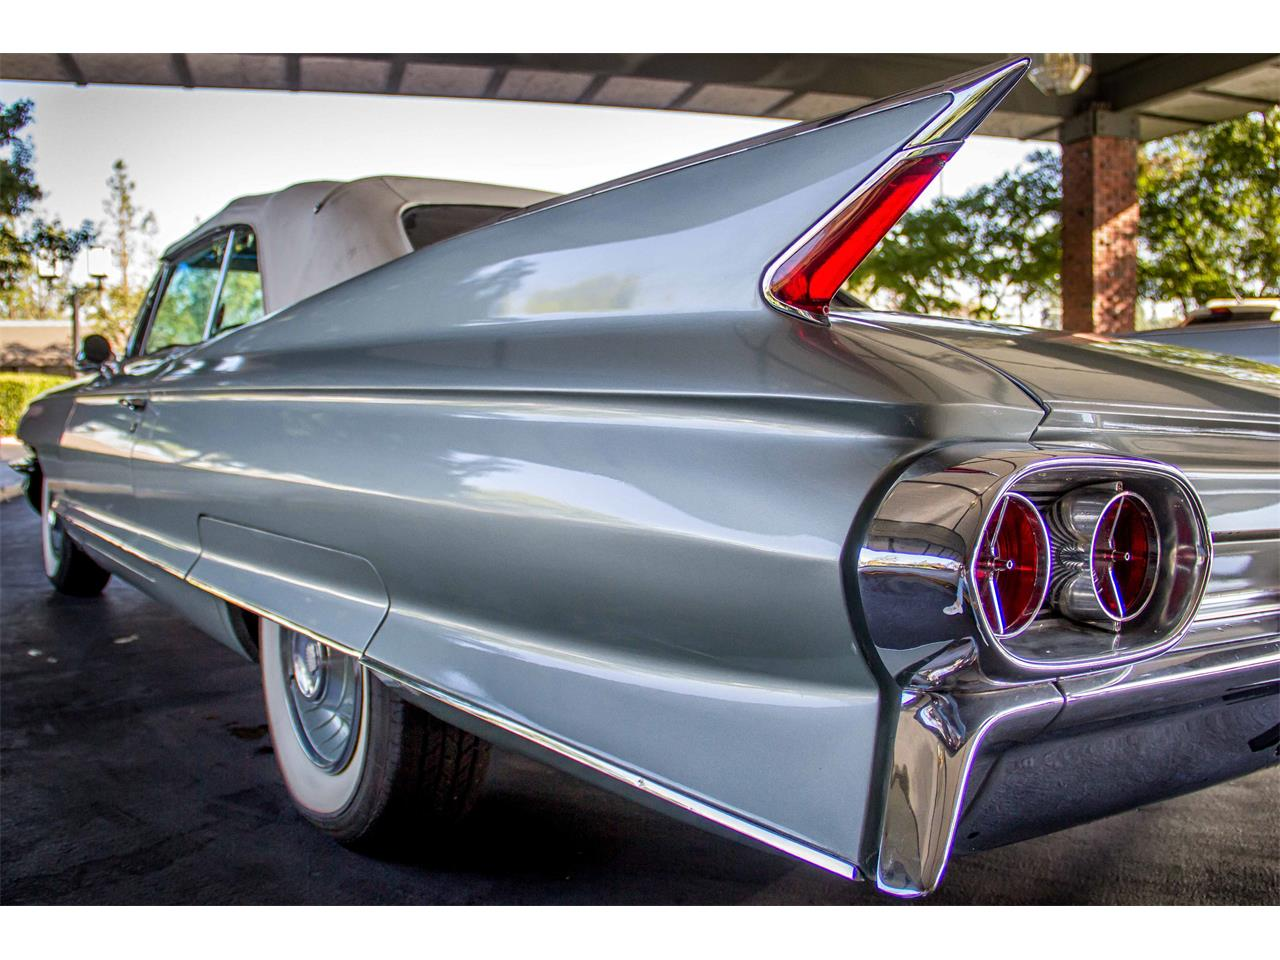 Large Picture of 1961 DeVille - $55,500.00 Offered by a Private Seller - K2GI